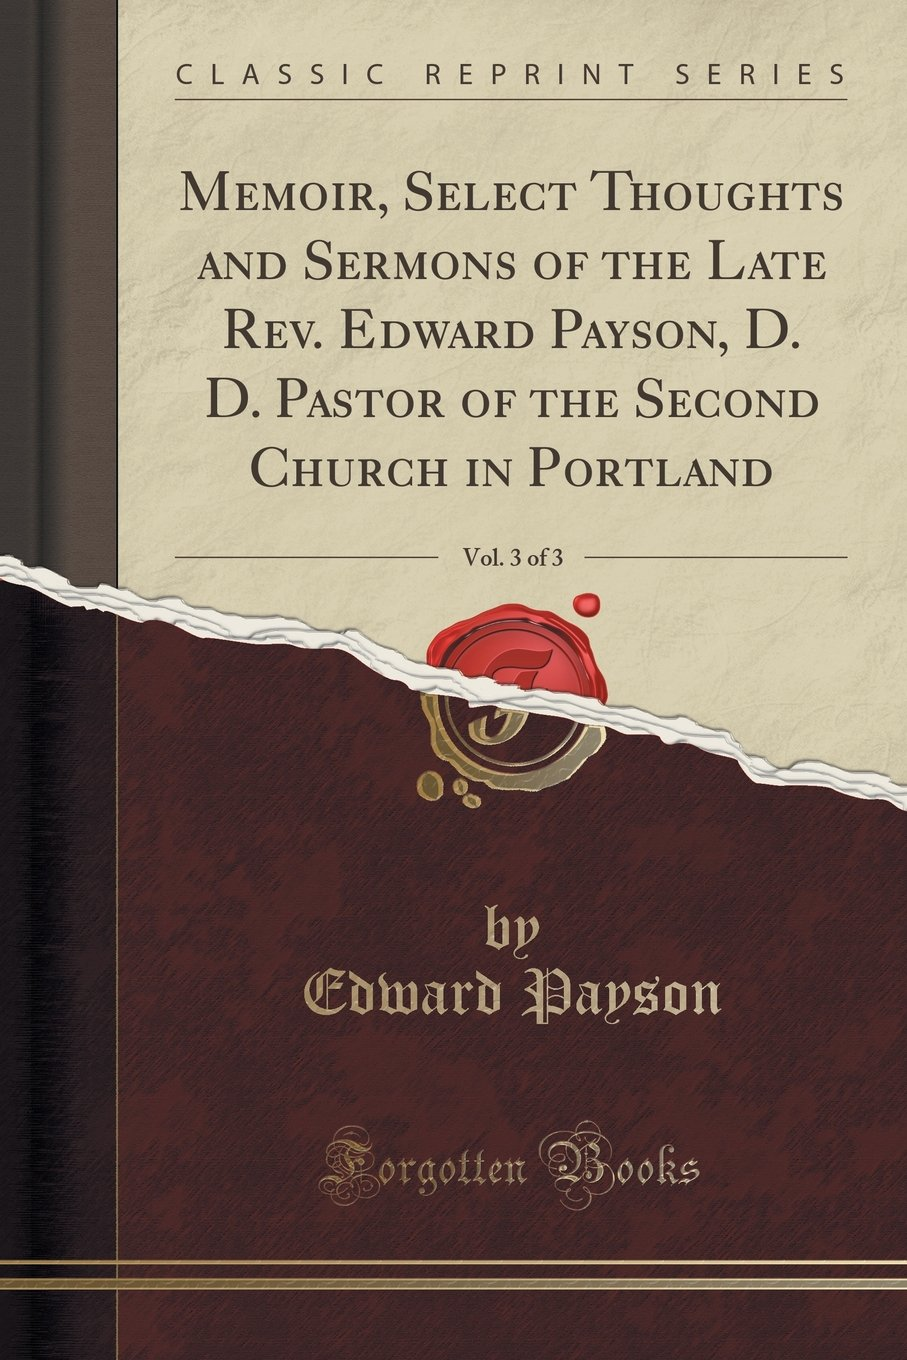 Download Memoir, Select Thoughts and Sermons of the Late Rev. Edward Payson, D. D. Pastor of the Second Church in Portland, Vol. 3 of 3 (Classic Reprint) pdf